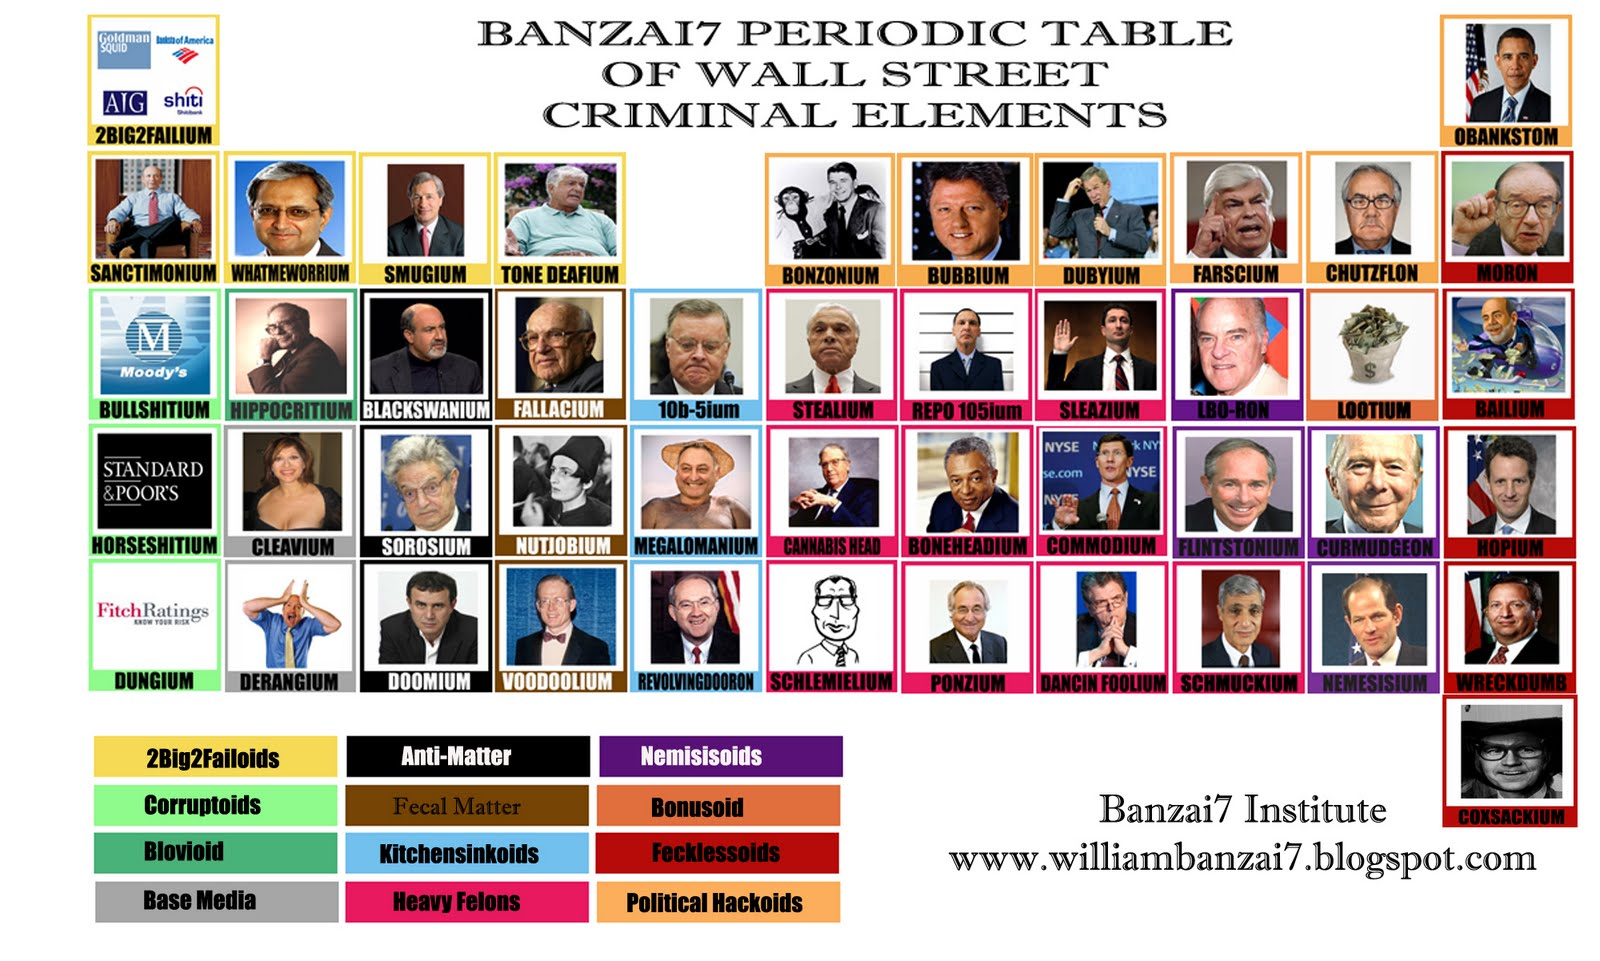 Banzai7 Period Table of Criminal Elements